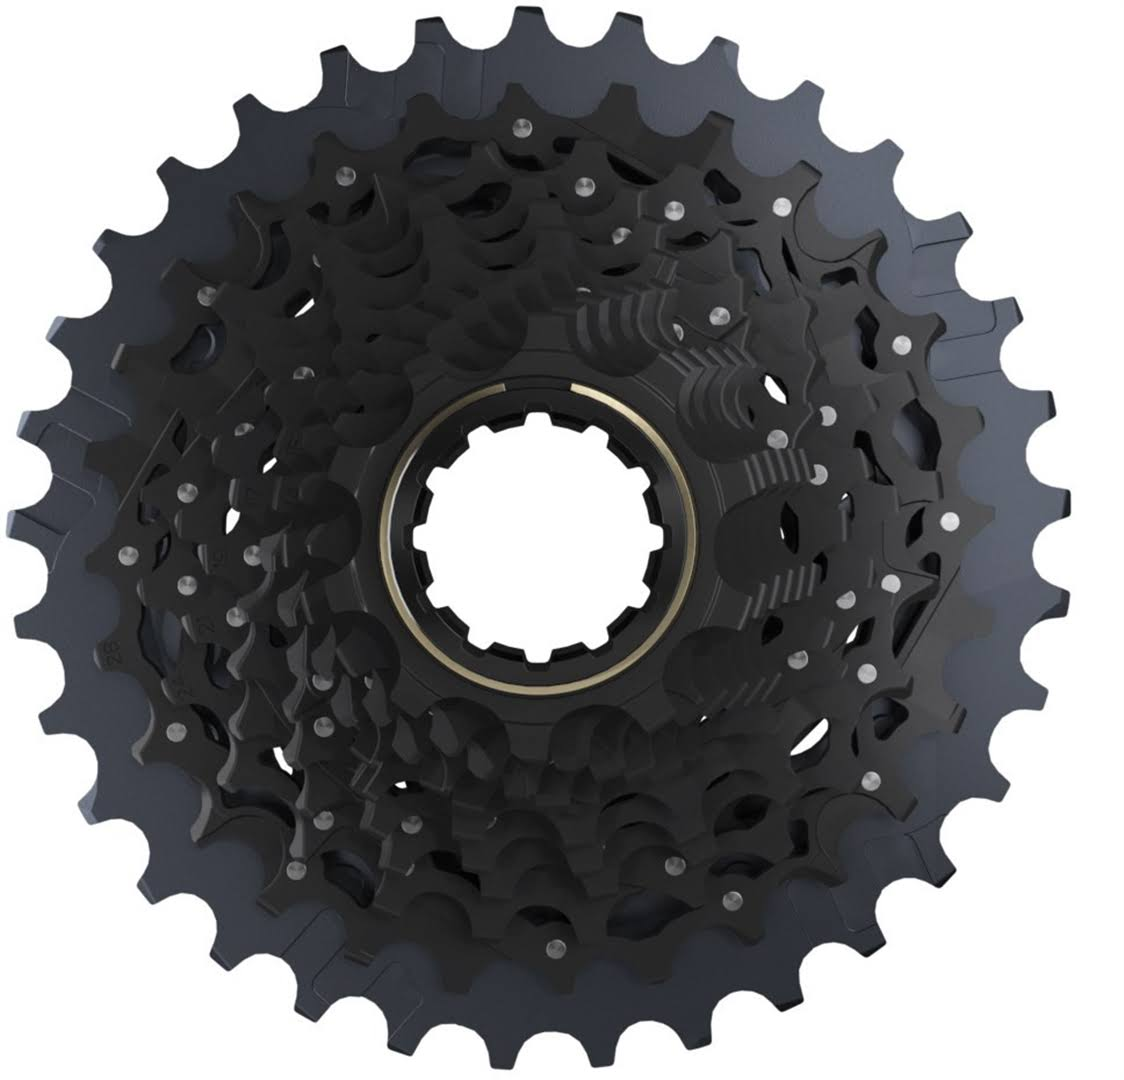 SRAM Force AXS Xg-1270 Cassette for XDR Driver Body - Black, 12 Speed, 10-33t